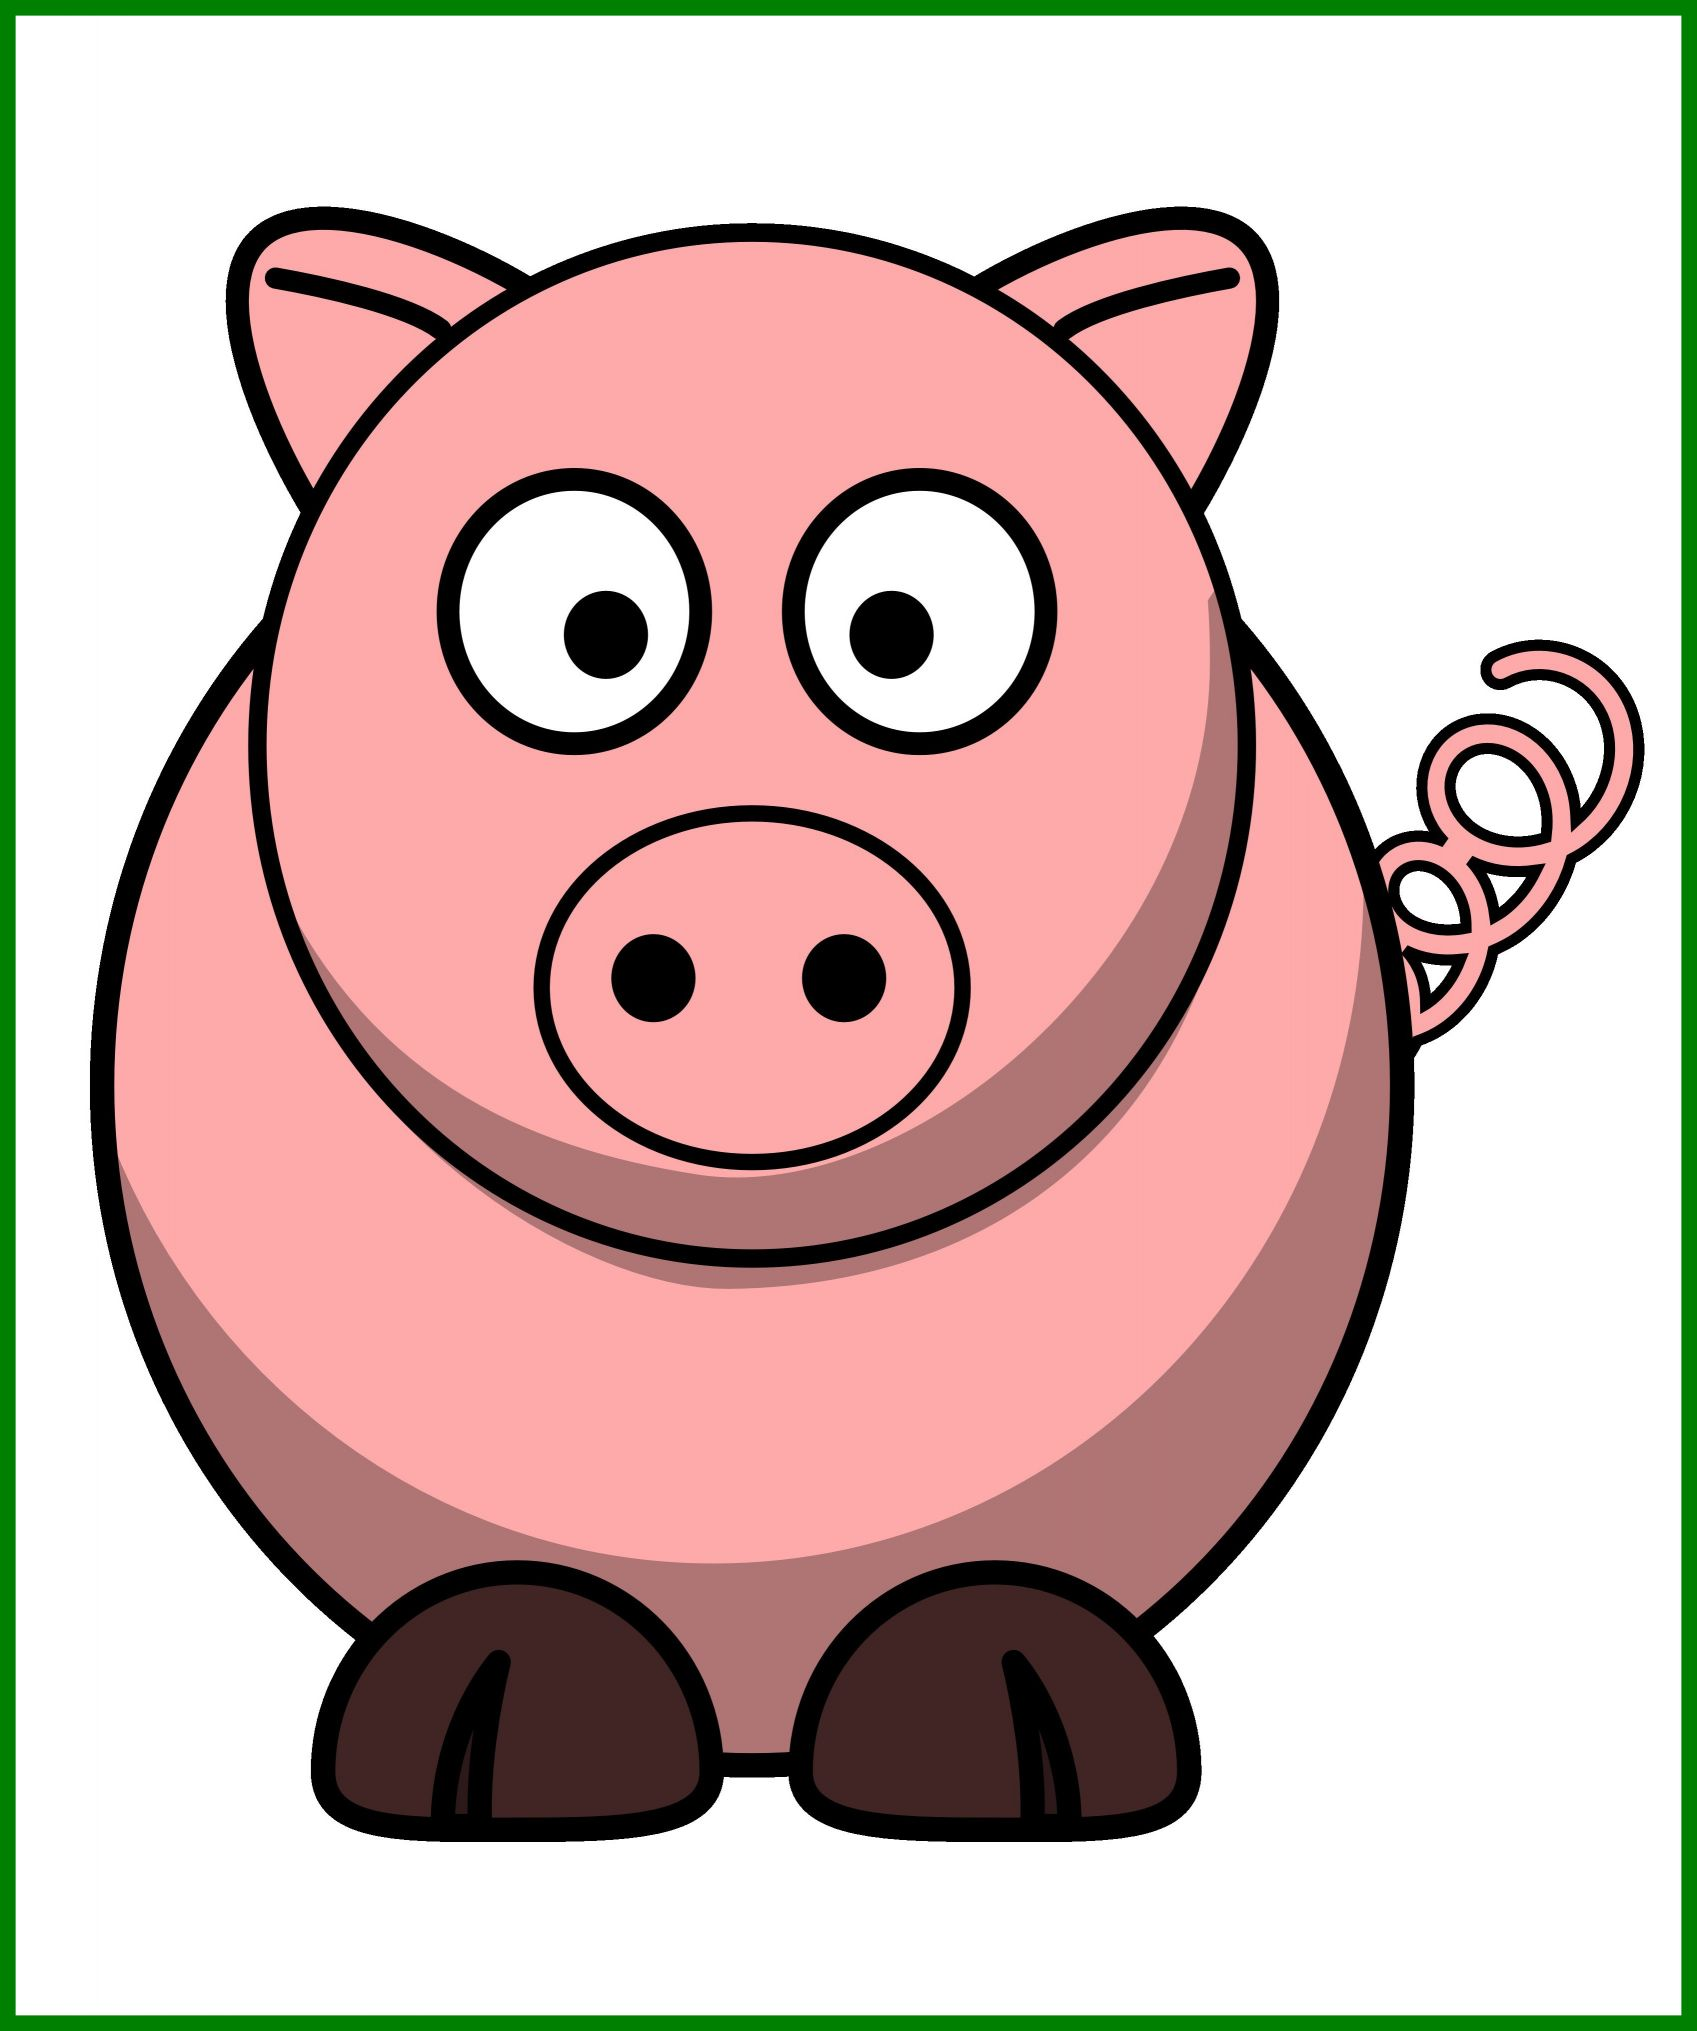 1697x2031 Fascinating Bacon Clipart Piggy Image For Pig Clip Art Coloring